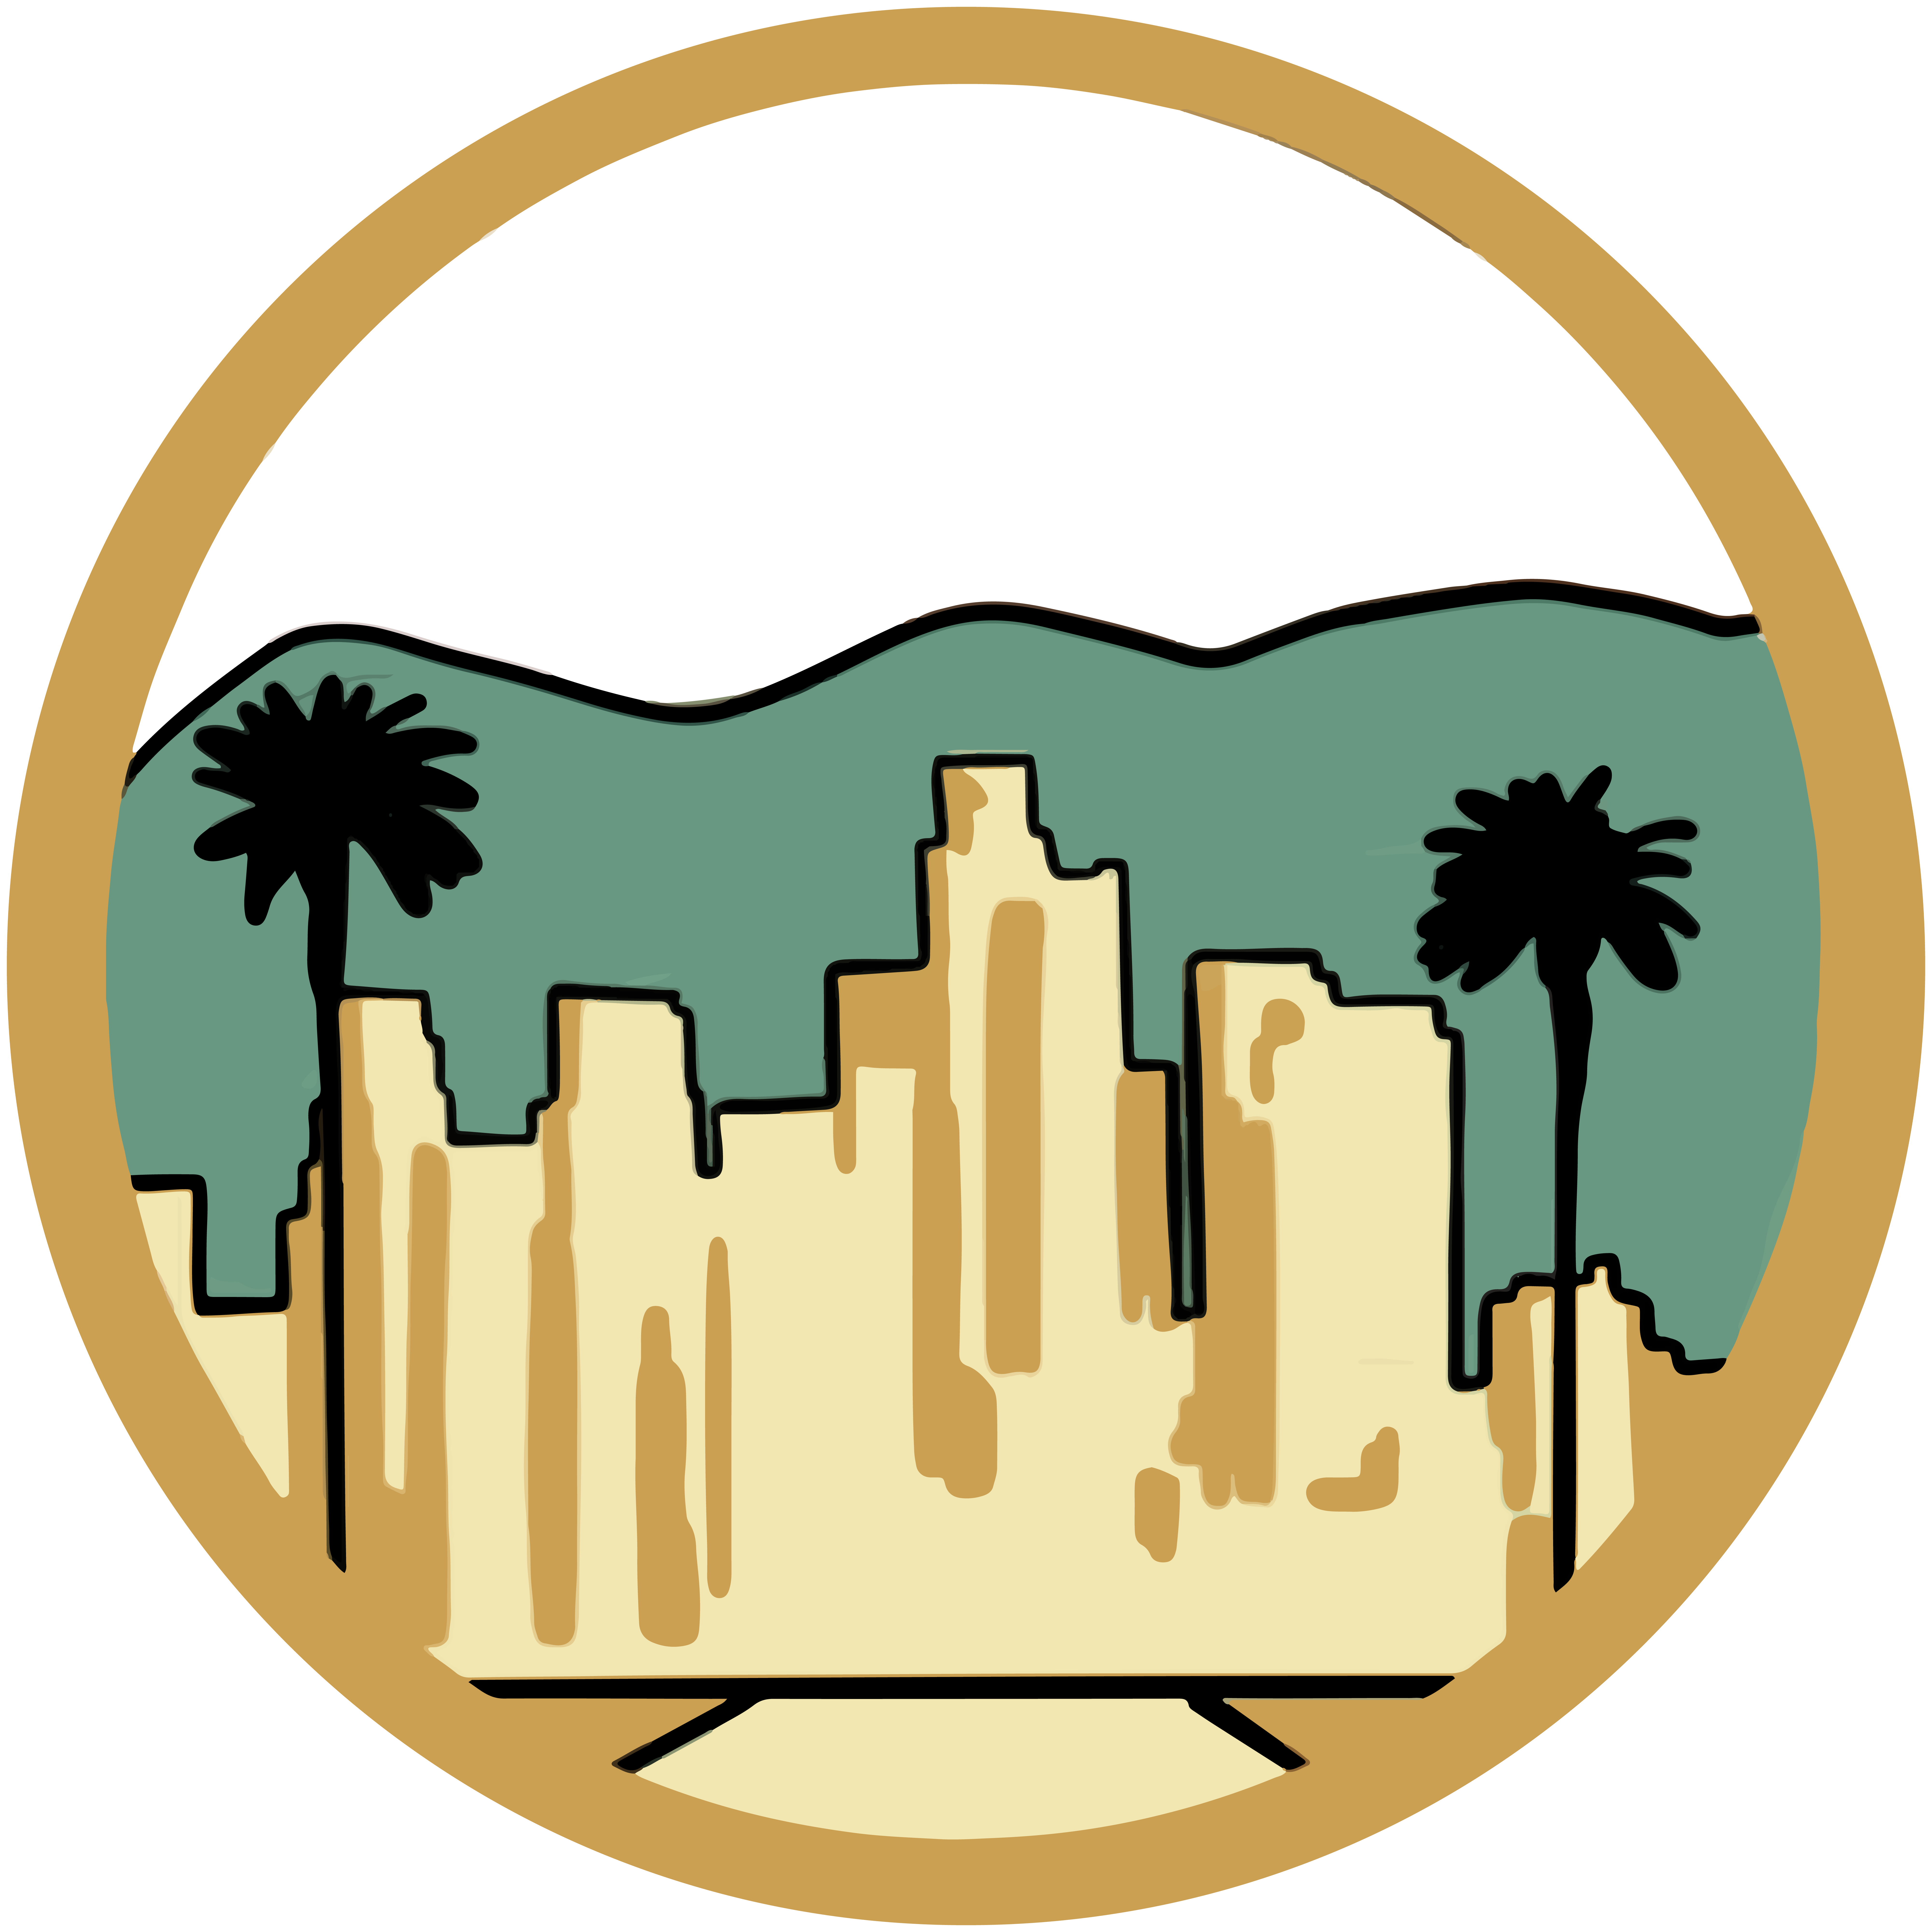 LA icon with city skyline and palm trees